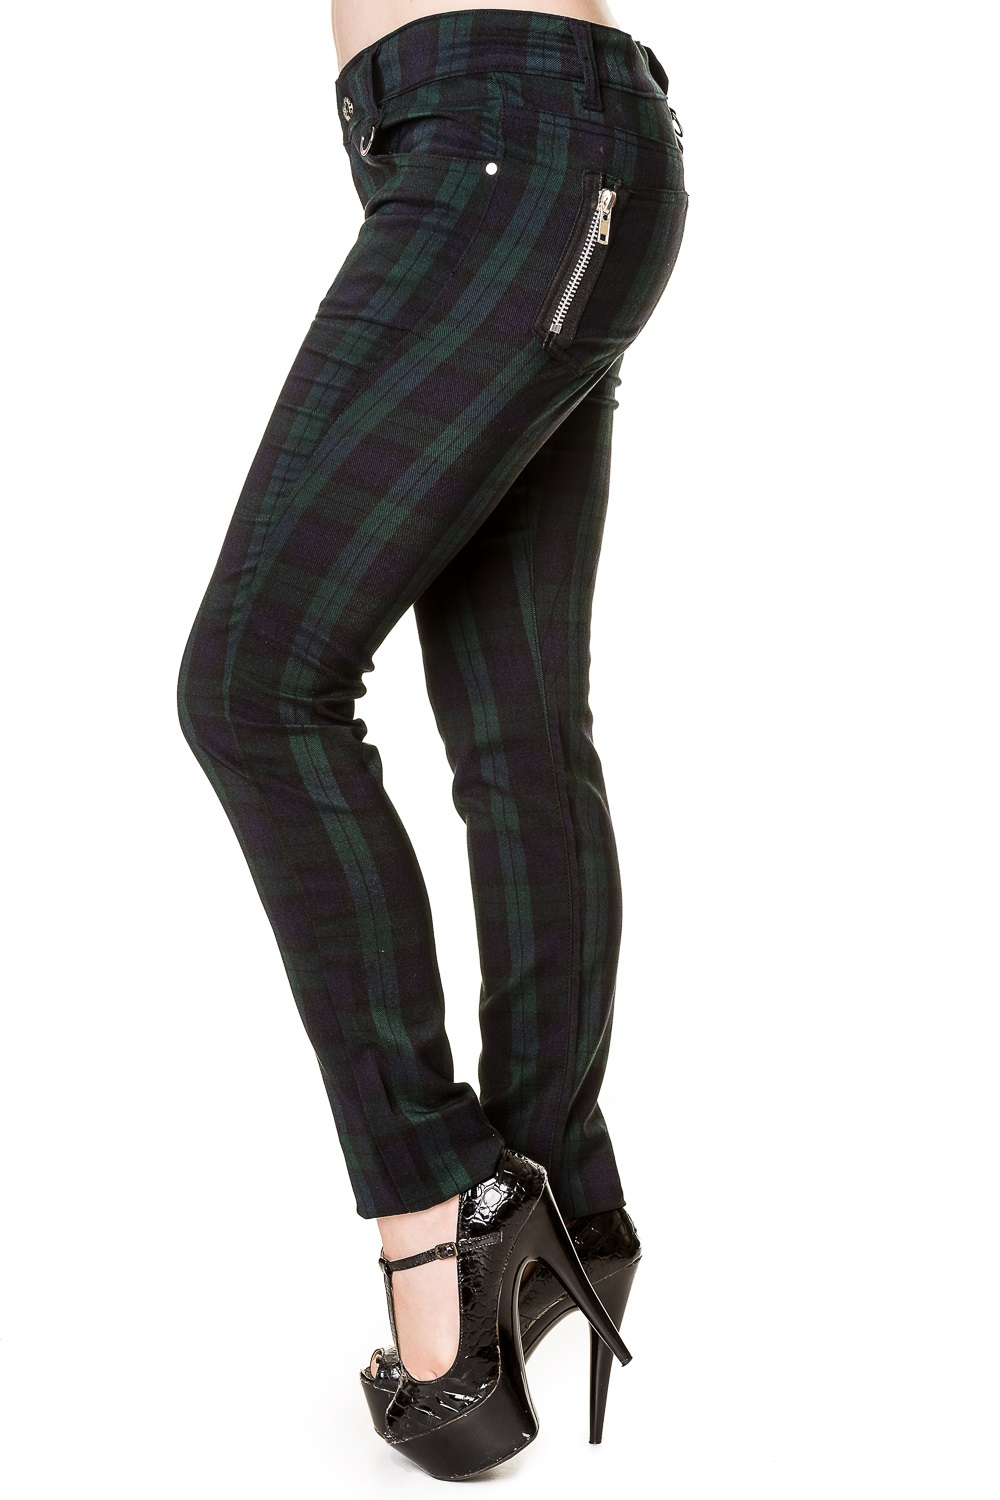 Ladies Banned Blue Tartan Emo Punk Skinny Goth 80s Jeans